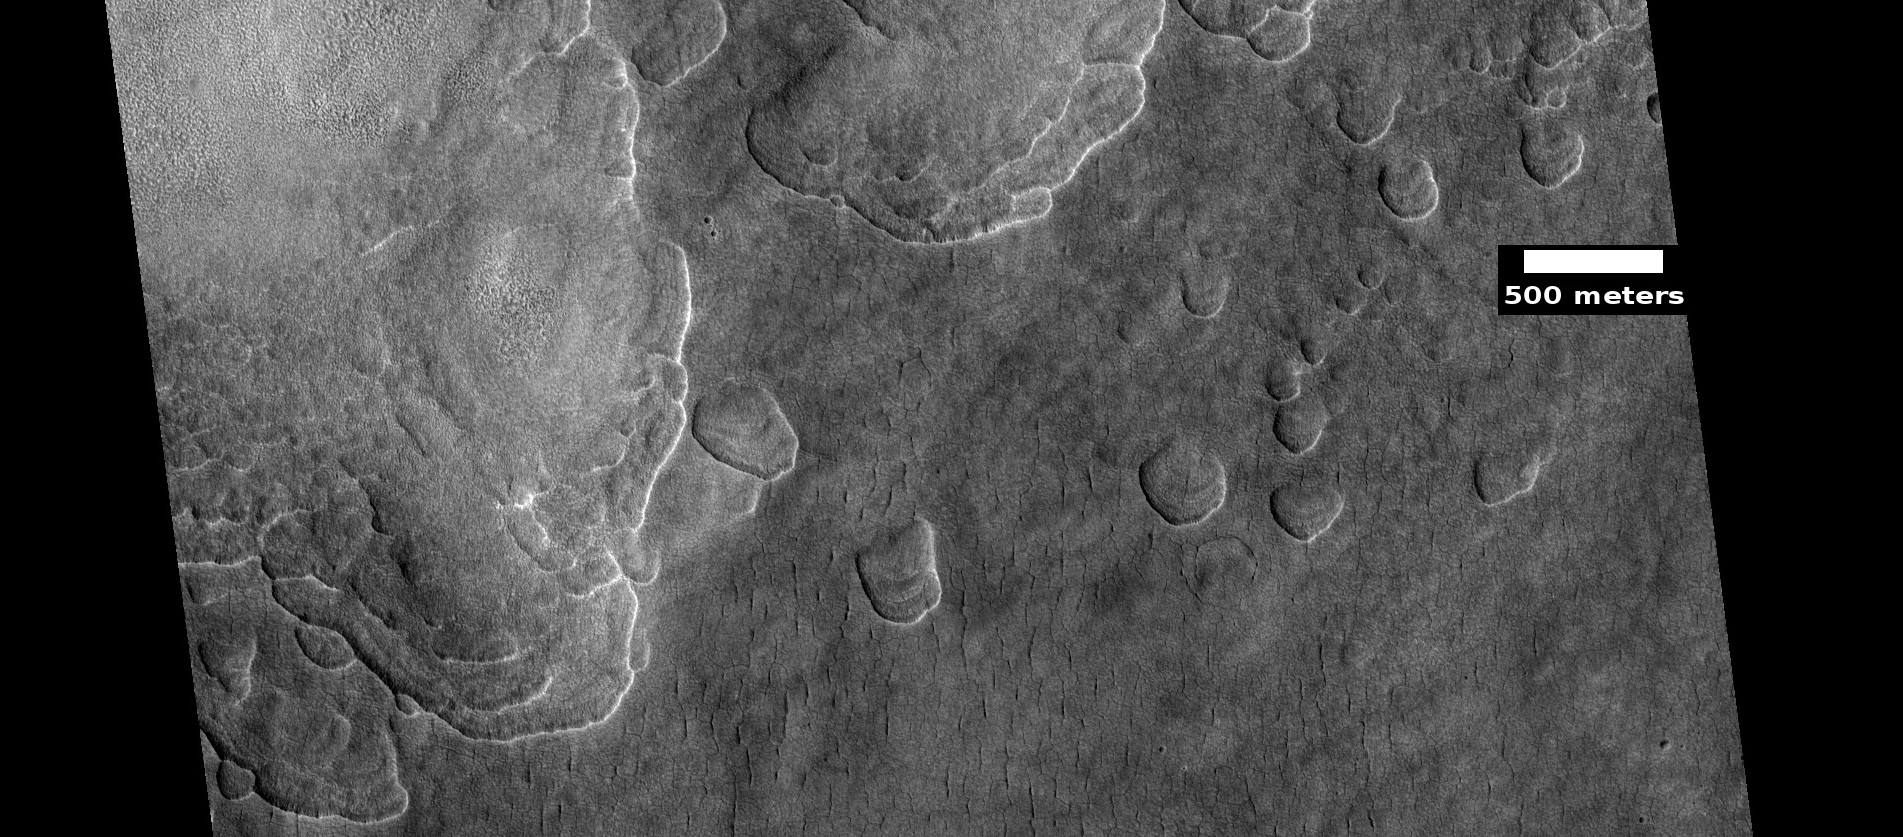 Scalloped ground, as seen by HiRISE under HiWish program